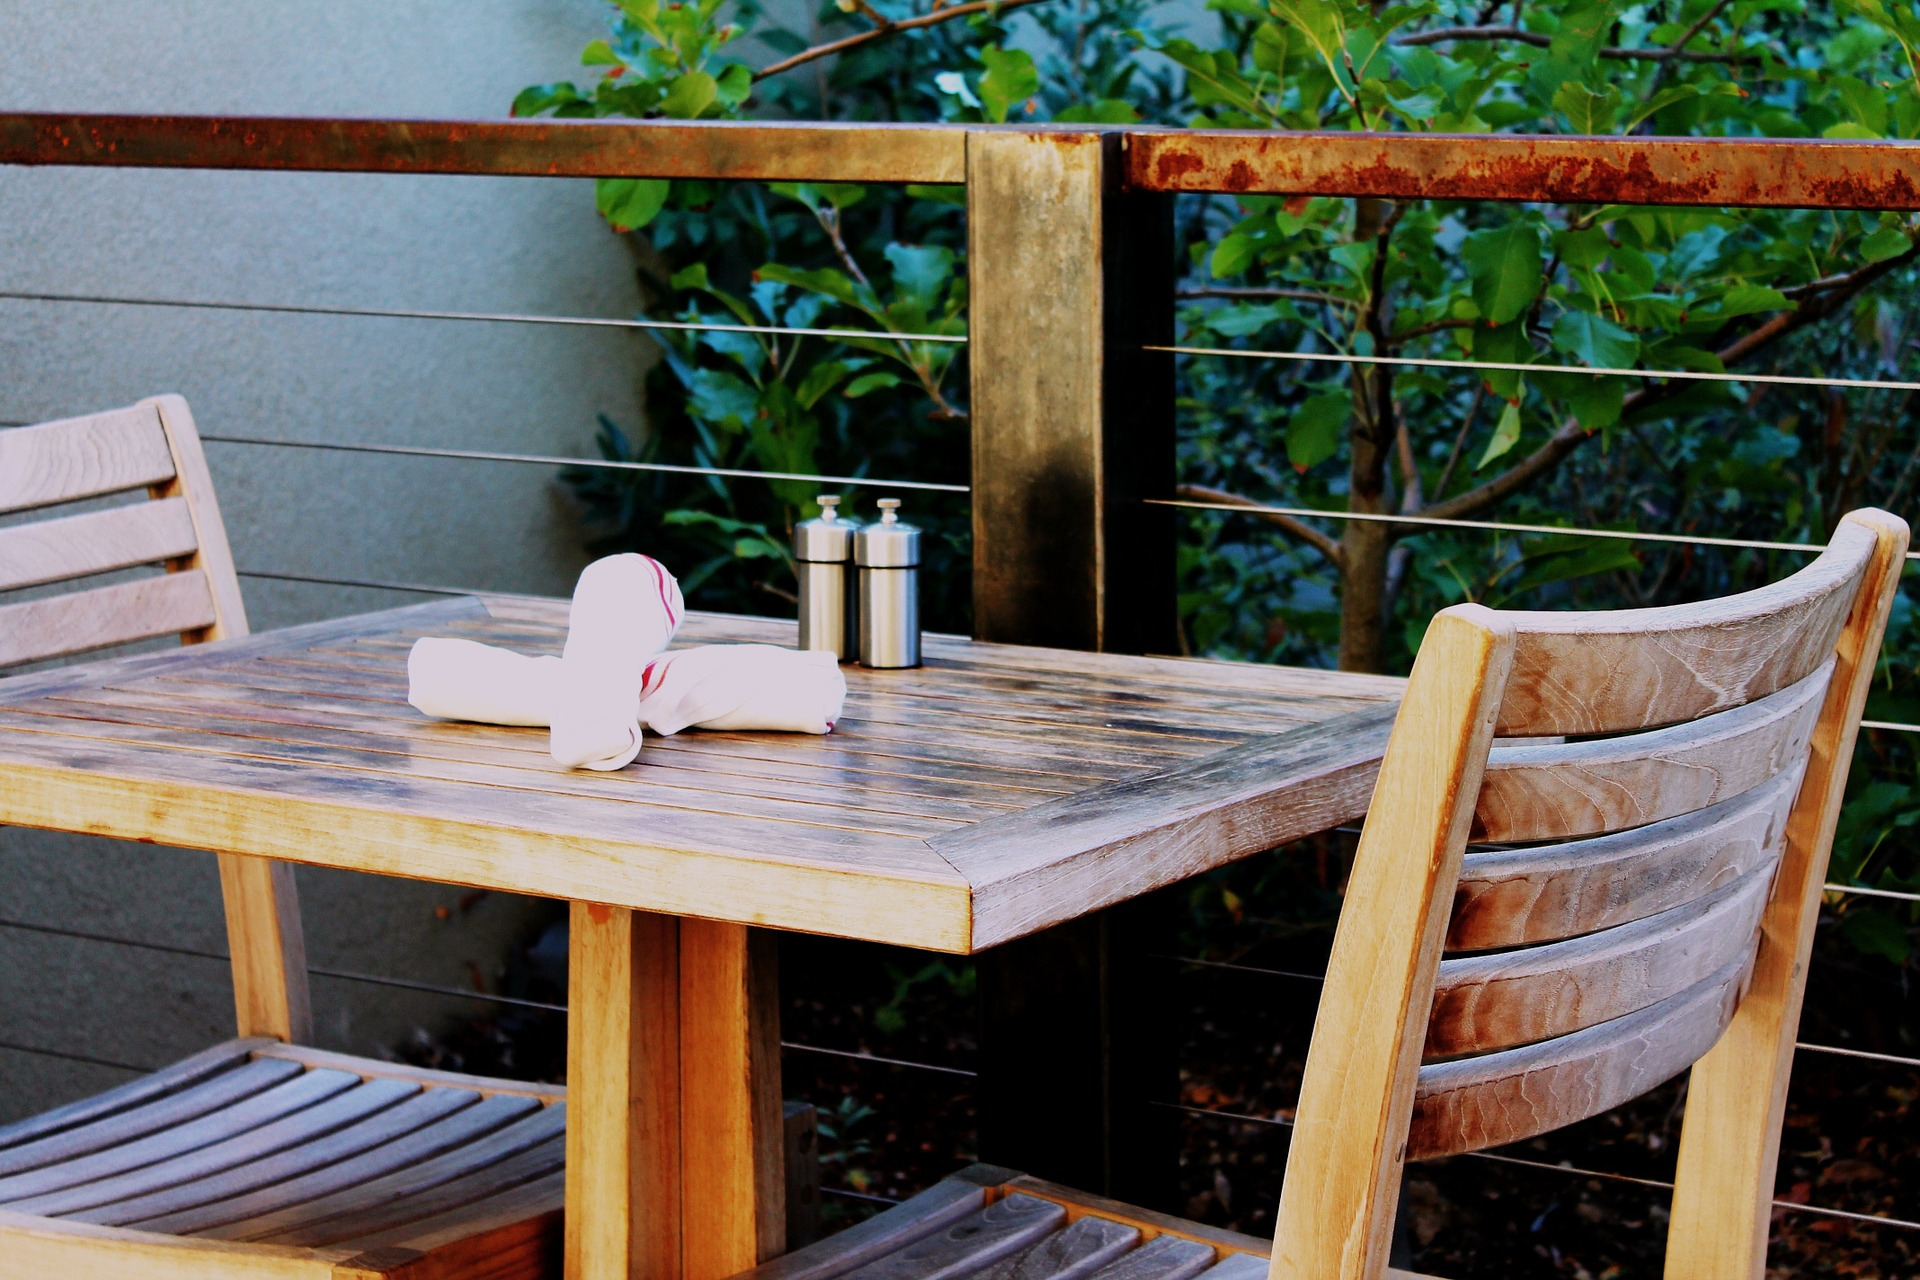 Two napkins on Wooden table with chairs